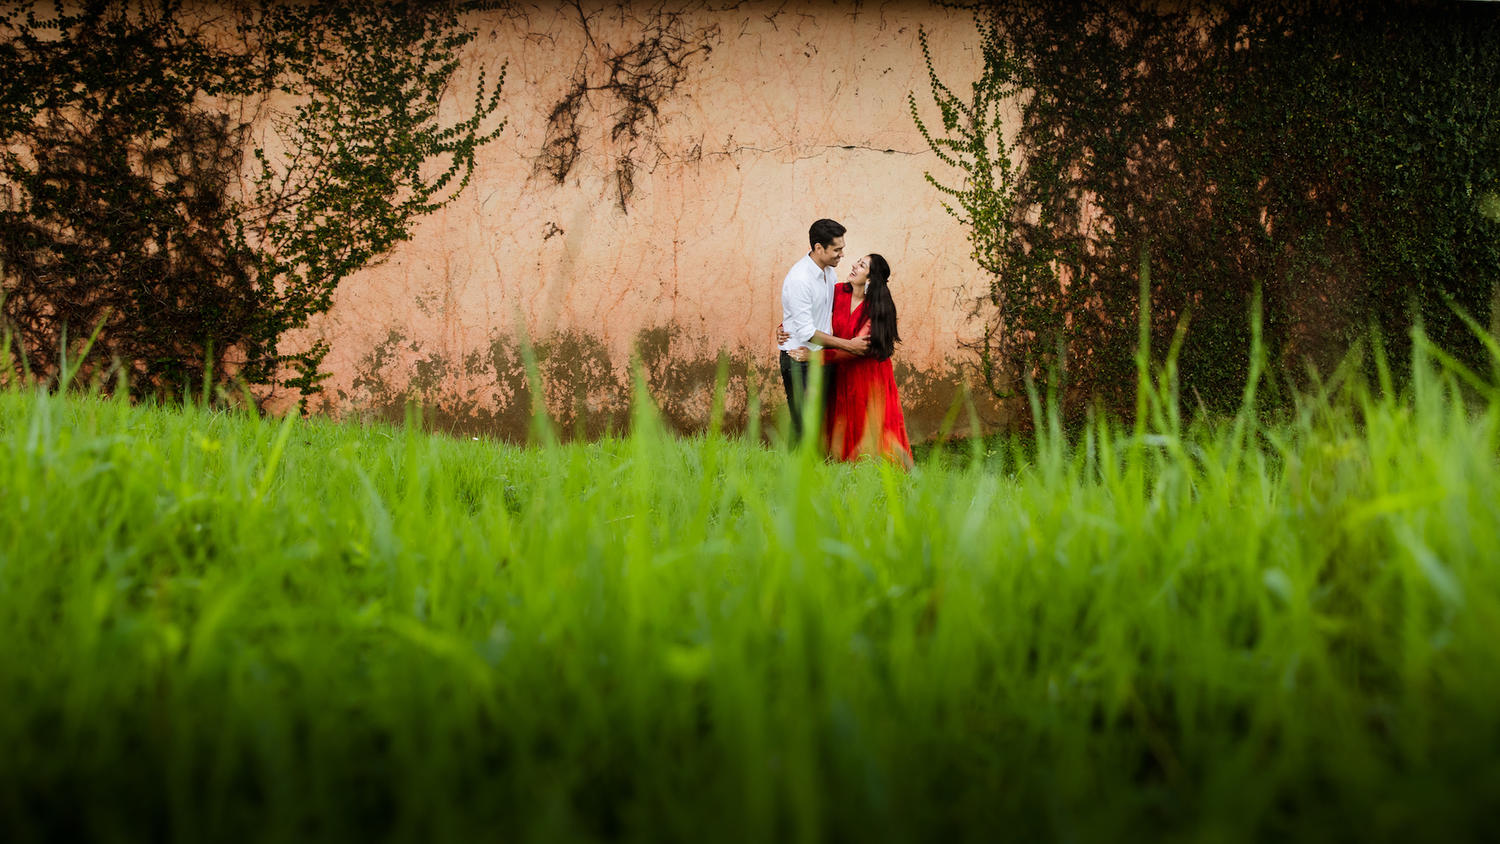 Prewedding Leela Kovalam Kerala Backwaters destination wedding